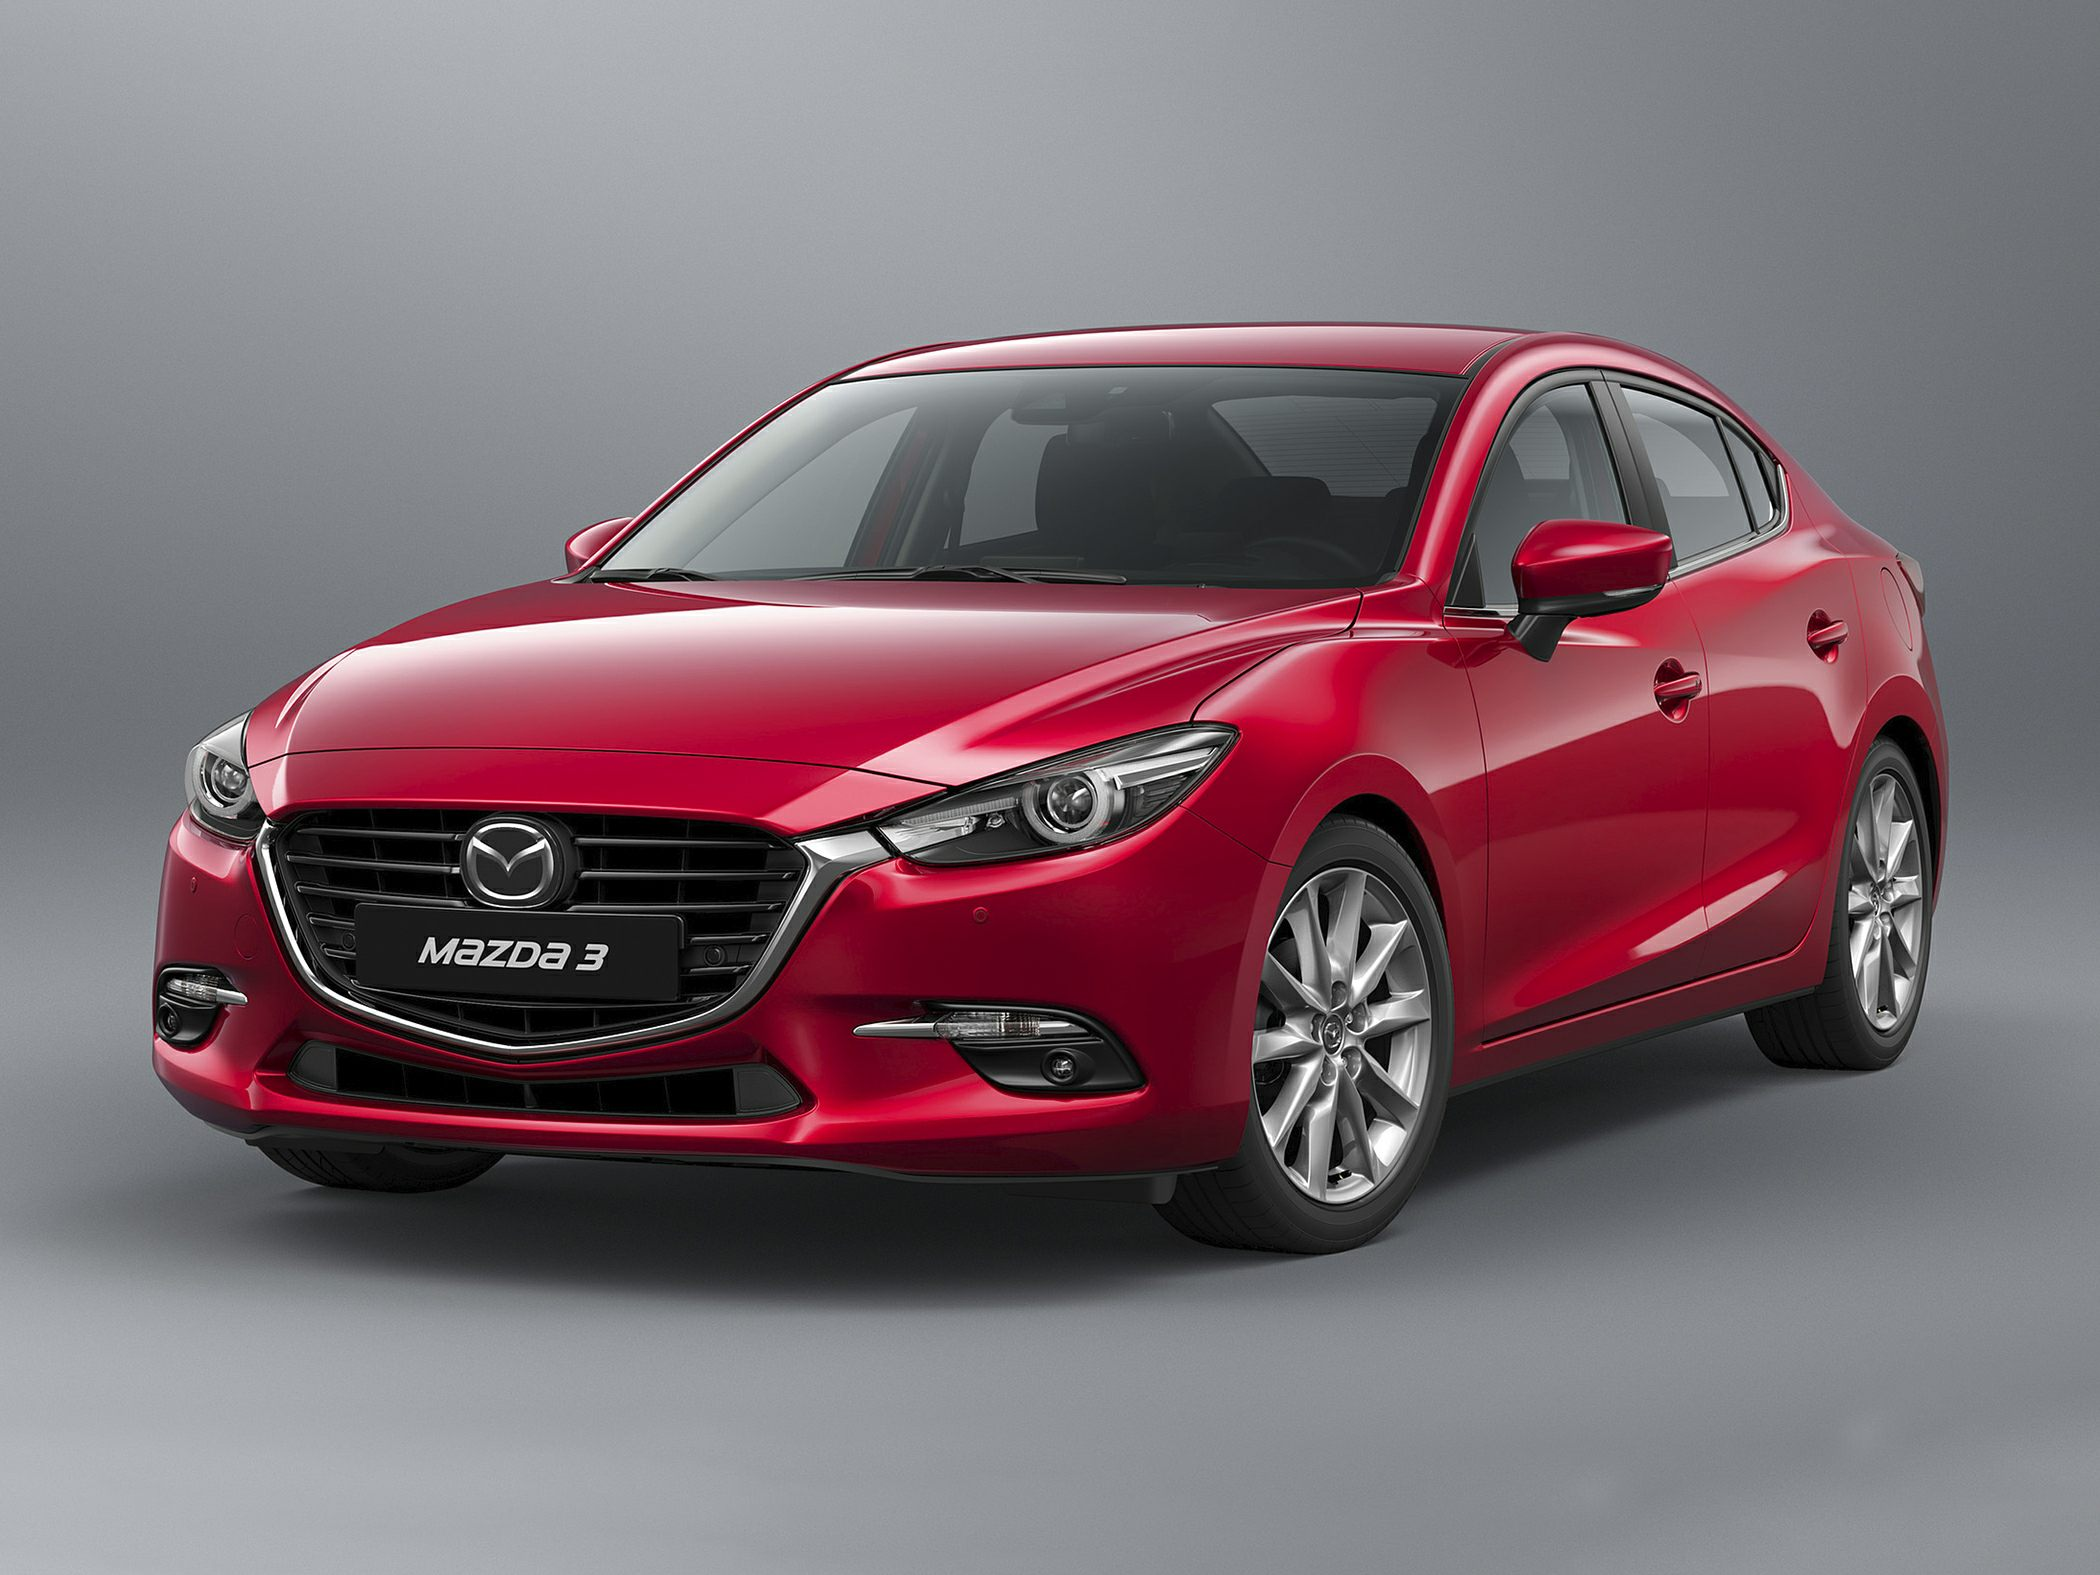 nj bergen introducing the cx mazda county specials jersey lease deals in new models htm